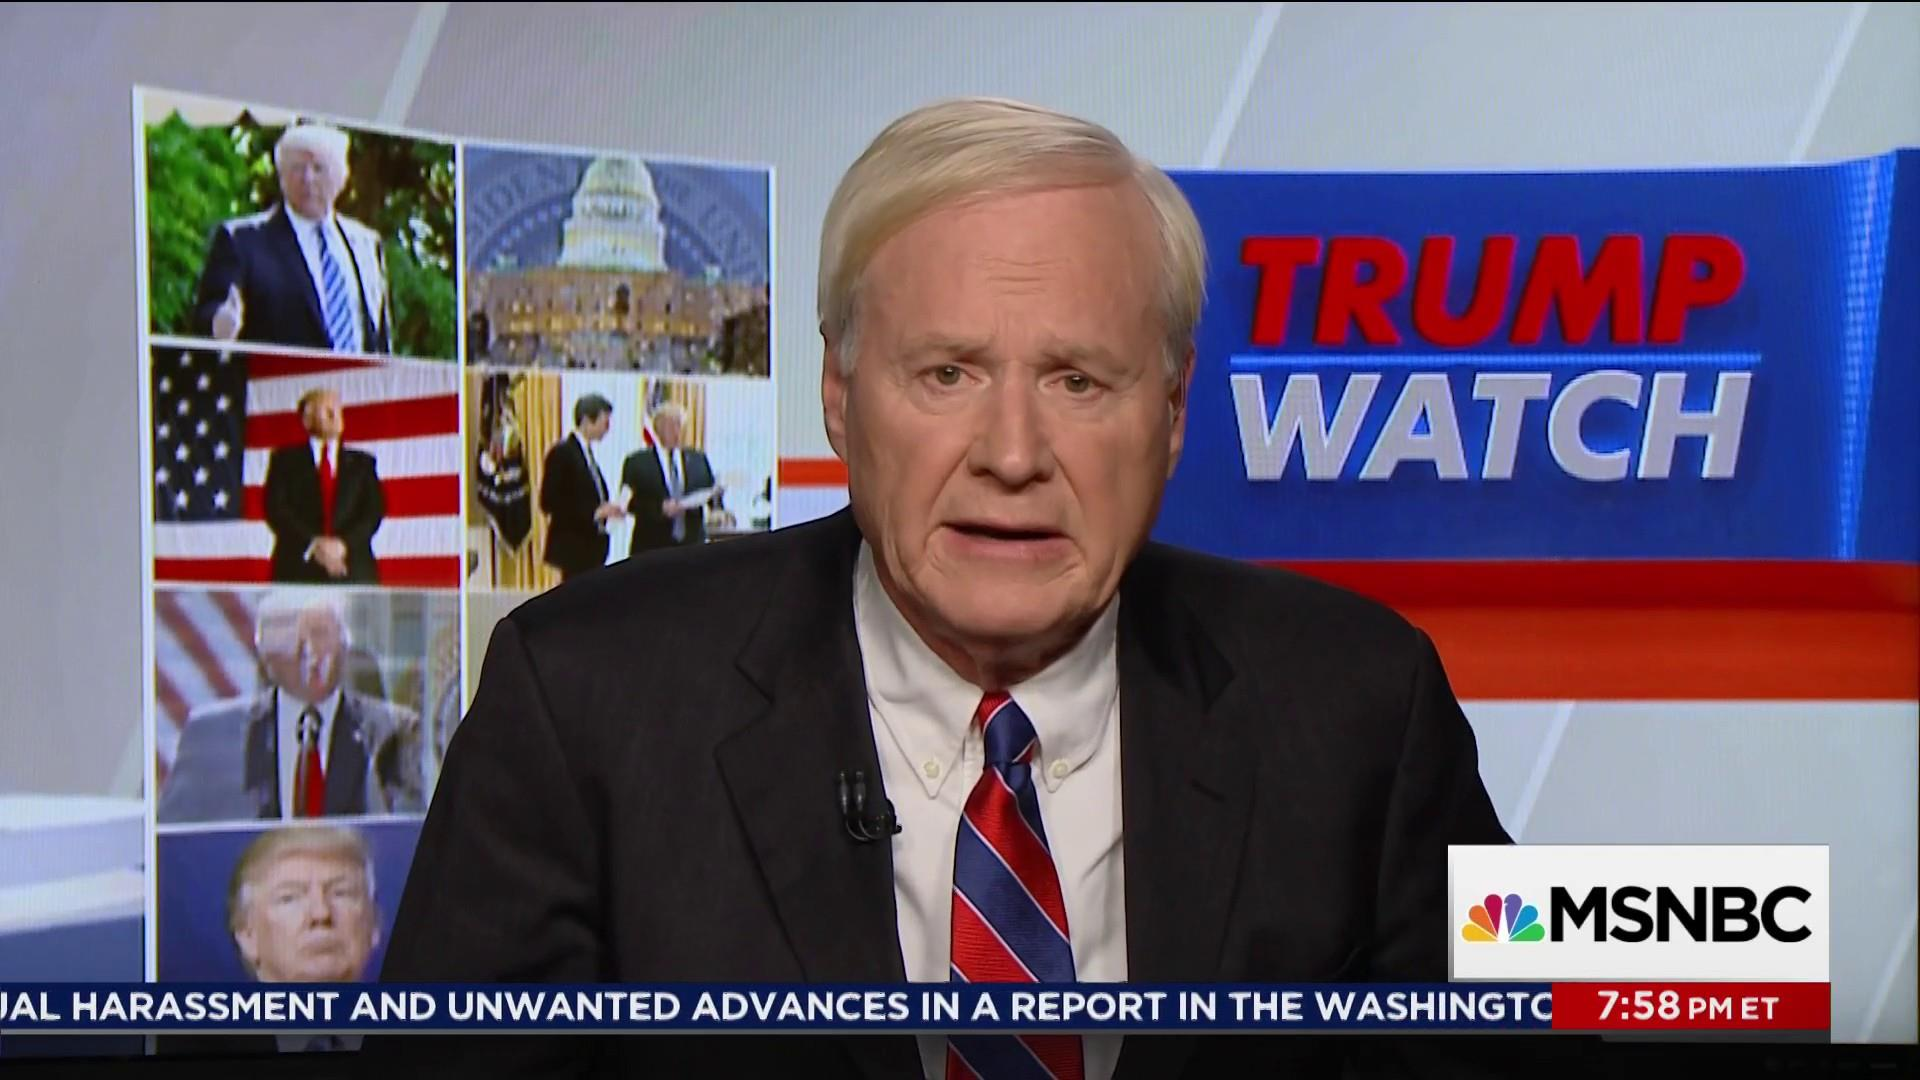 Matthews: This is a time of reckoning